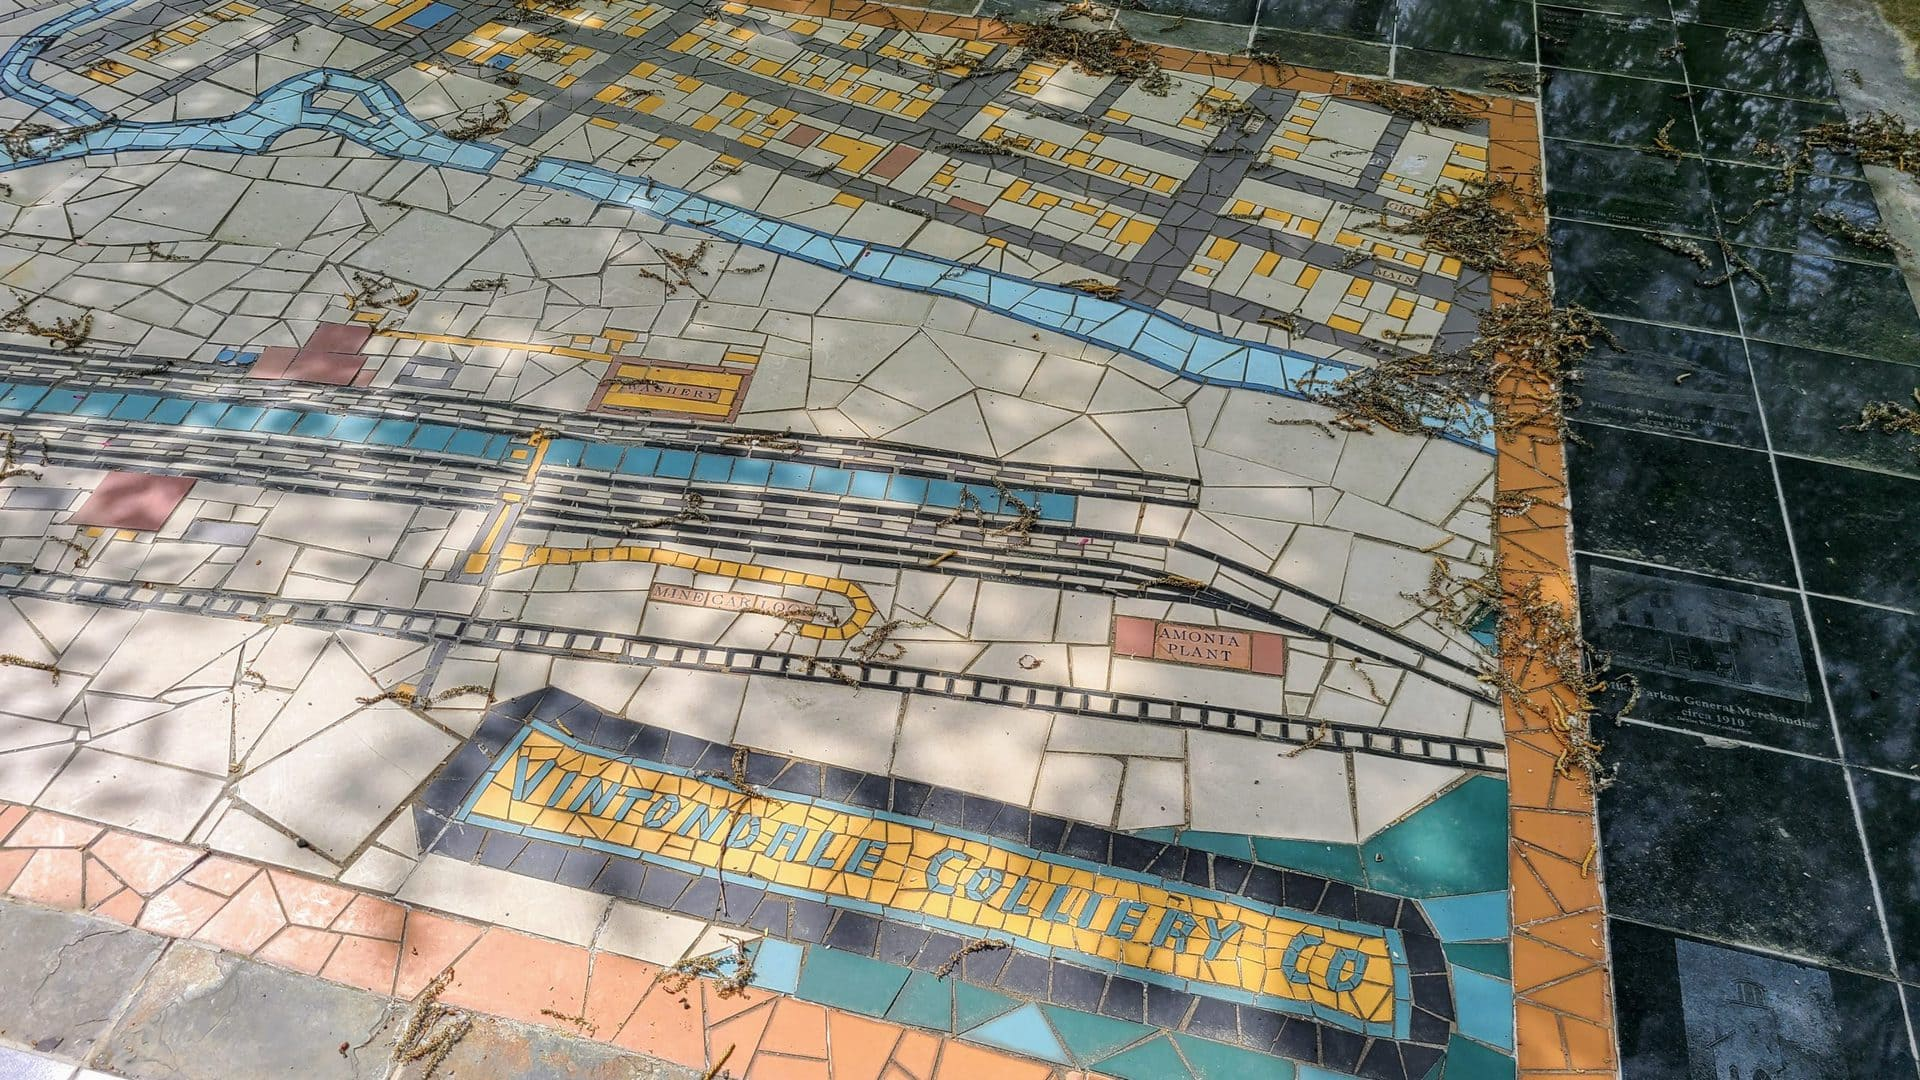 A tile mosaic map of the town of Vintondale